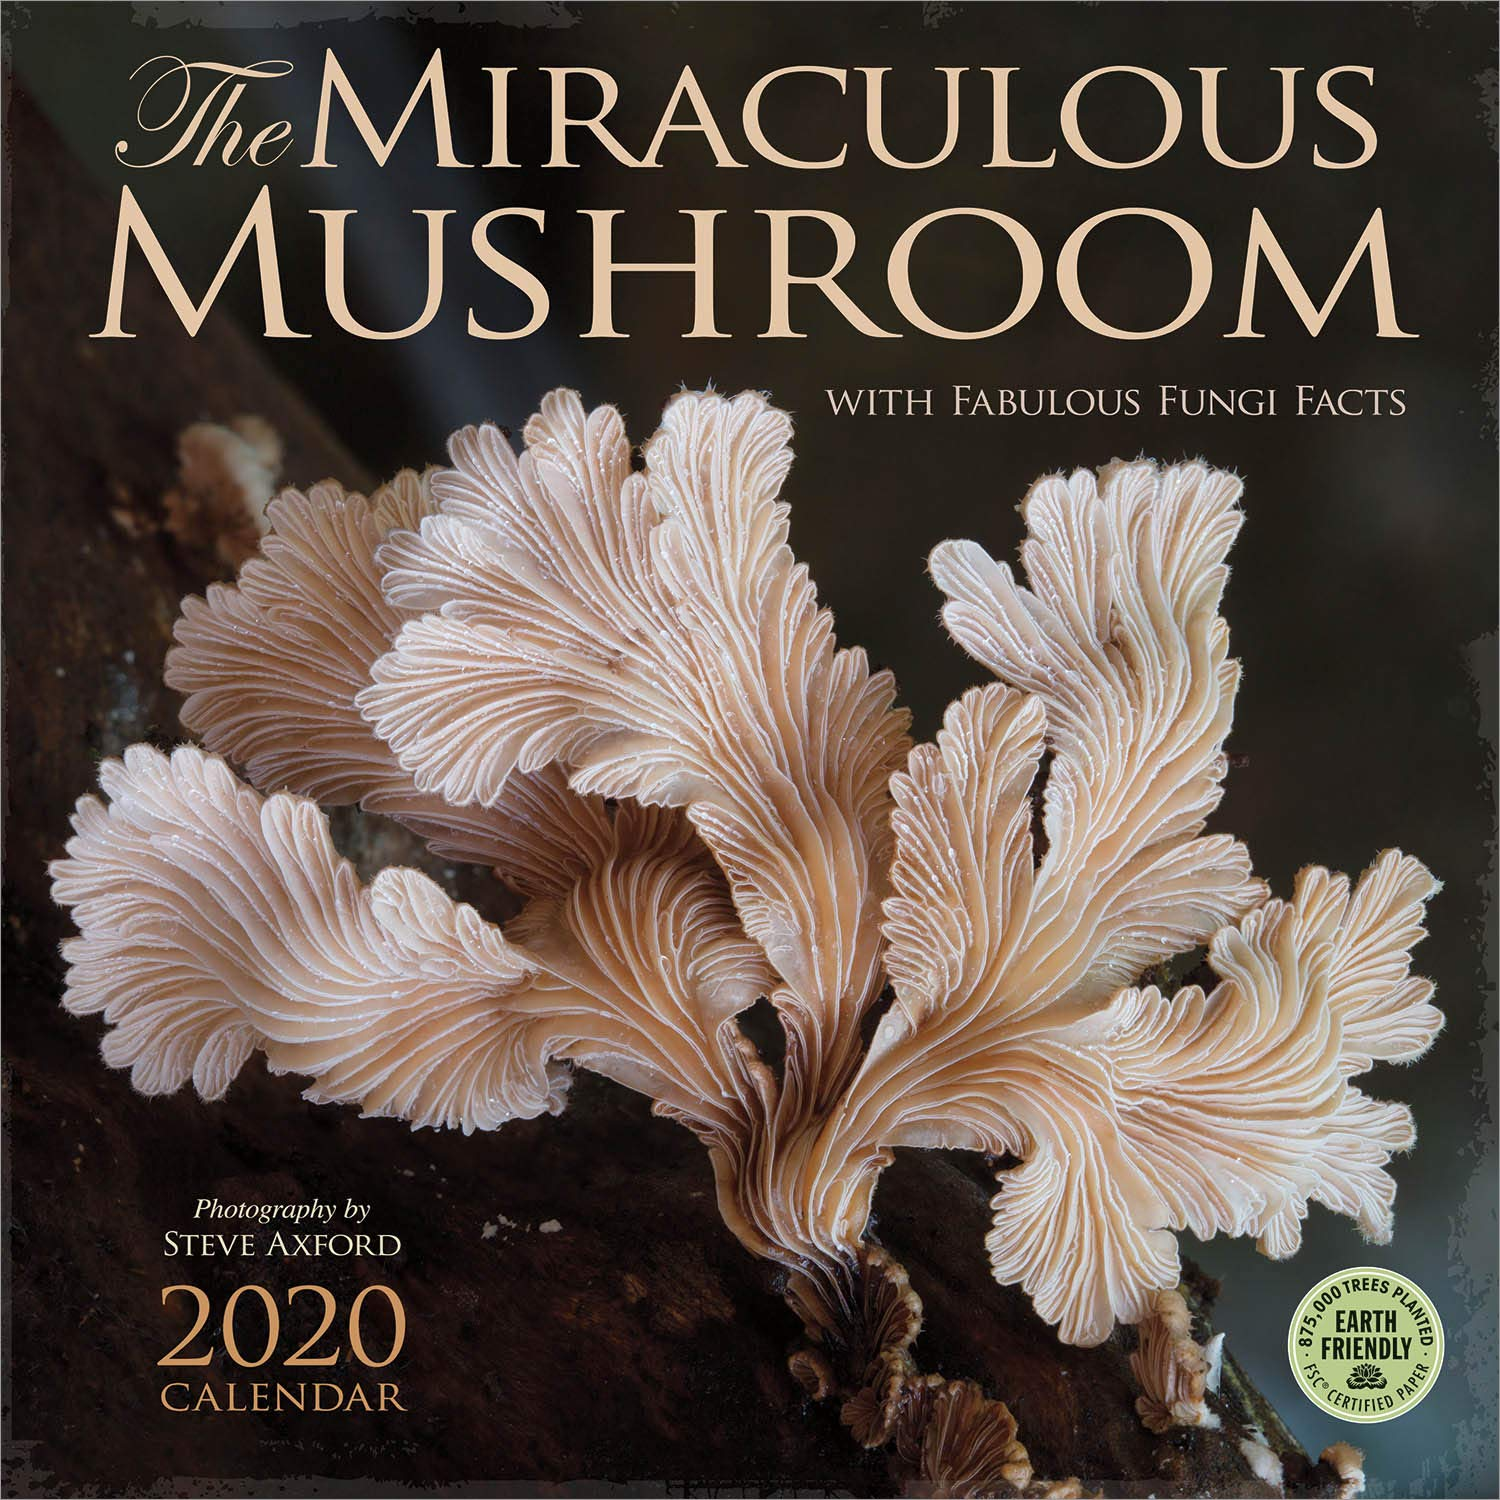 The Miraculous Mushroom 2020 Wall Calendar: With Fabulous Fungi Facts by Amber Lotus Publishing